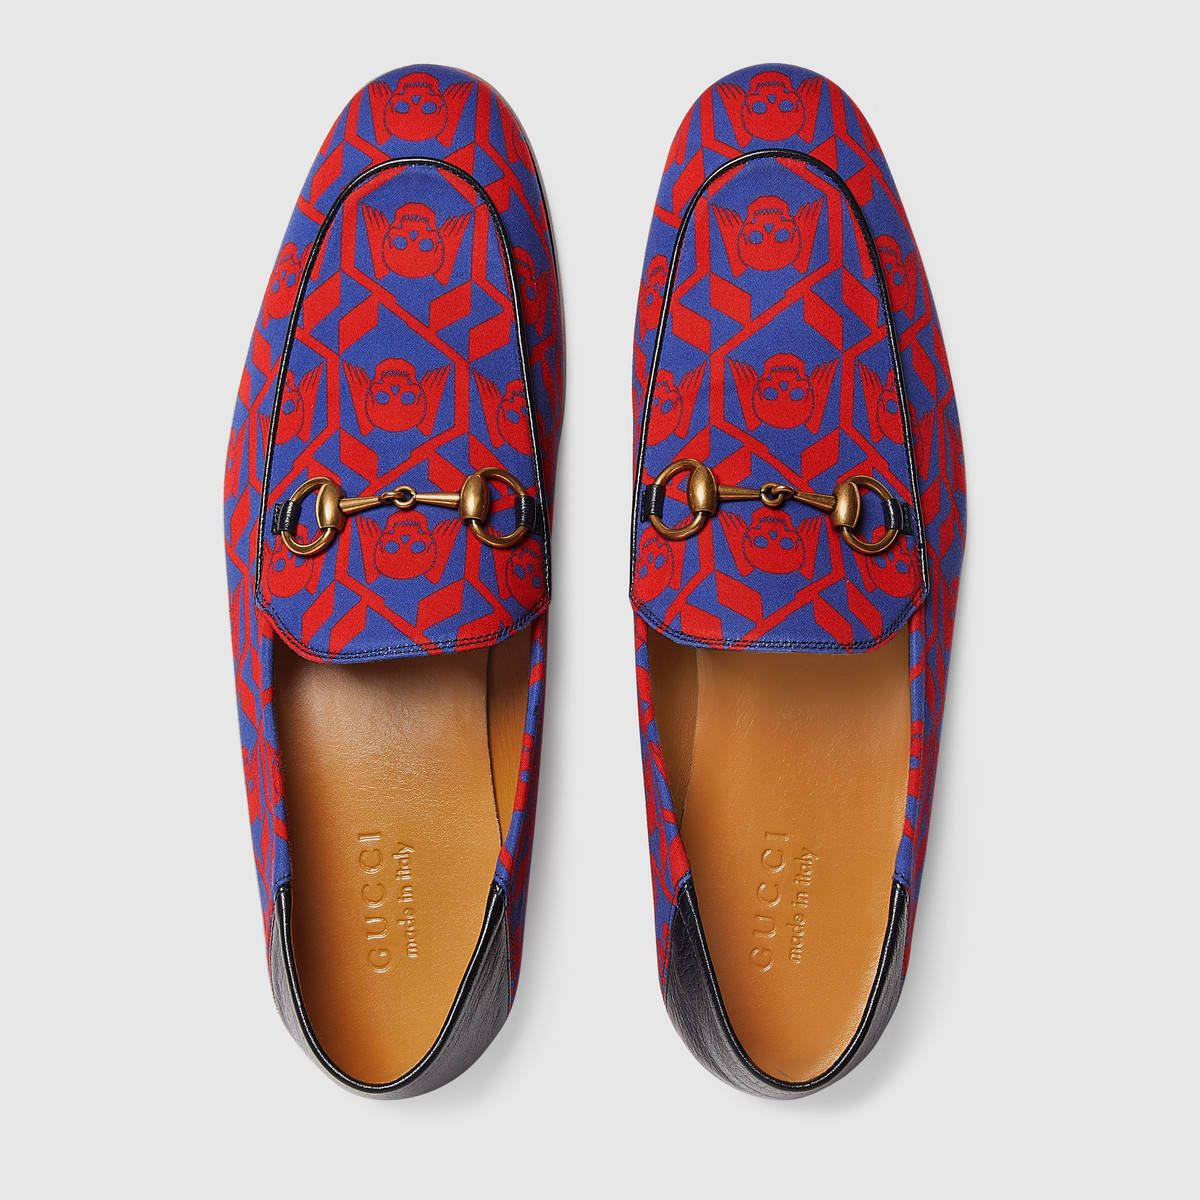 f77be2ded Gucci Geometric Skulls print loafer | The art of fashion in 2019 ...